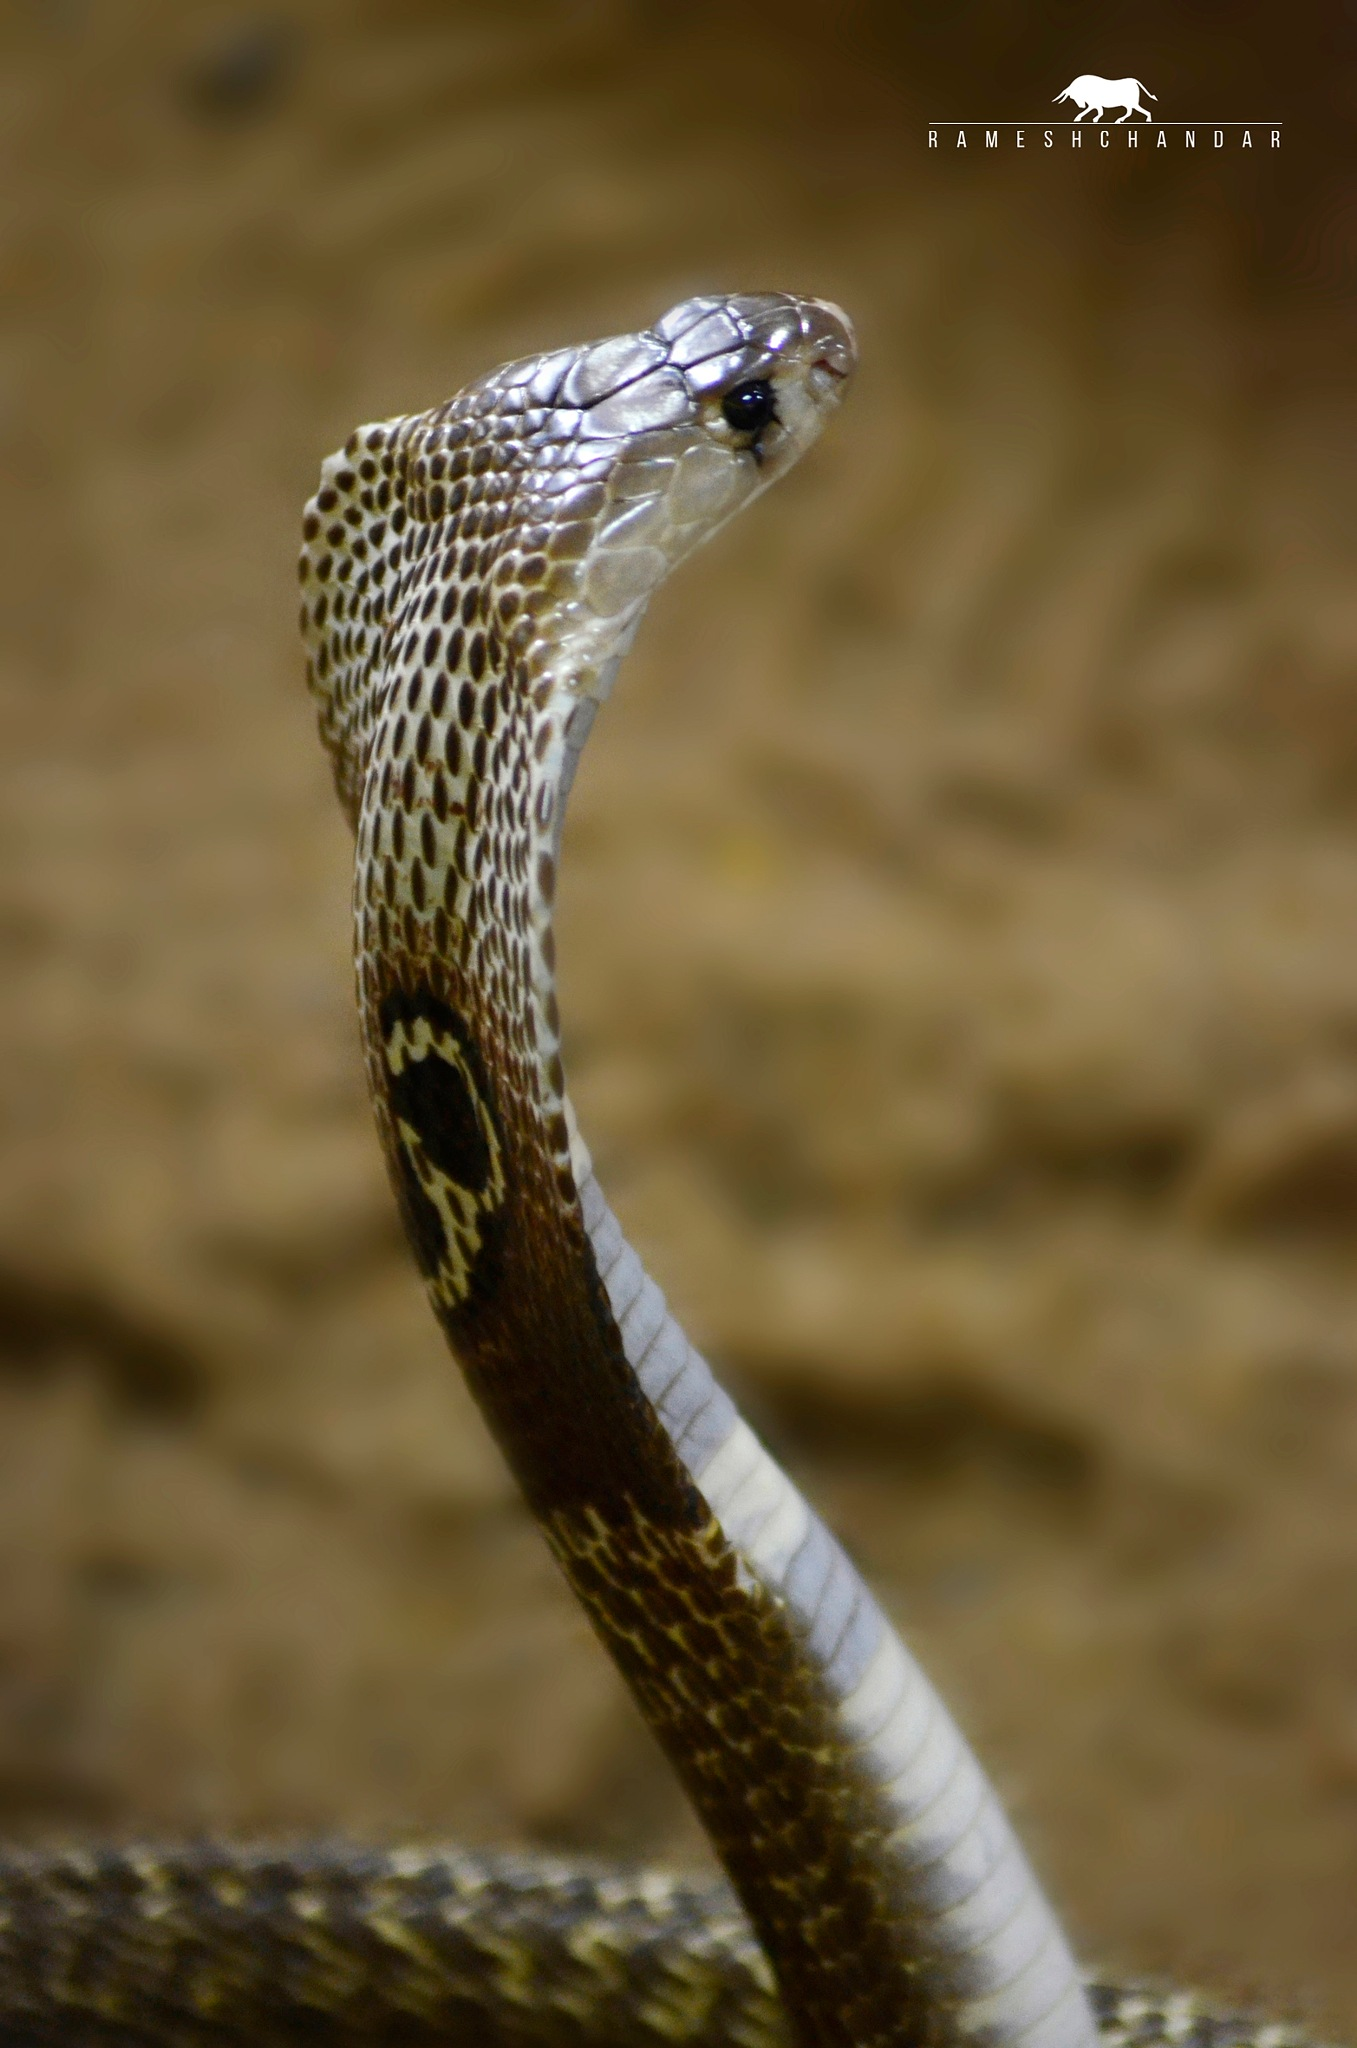 Cobra by rameshchandarr